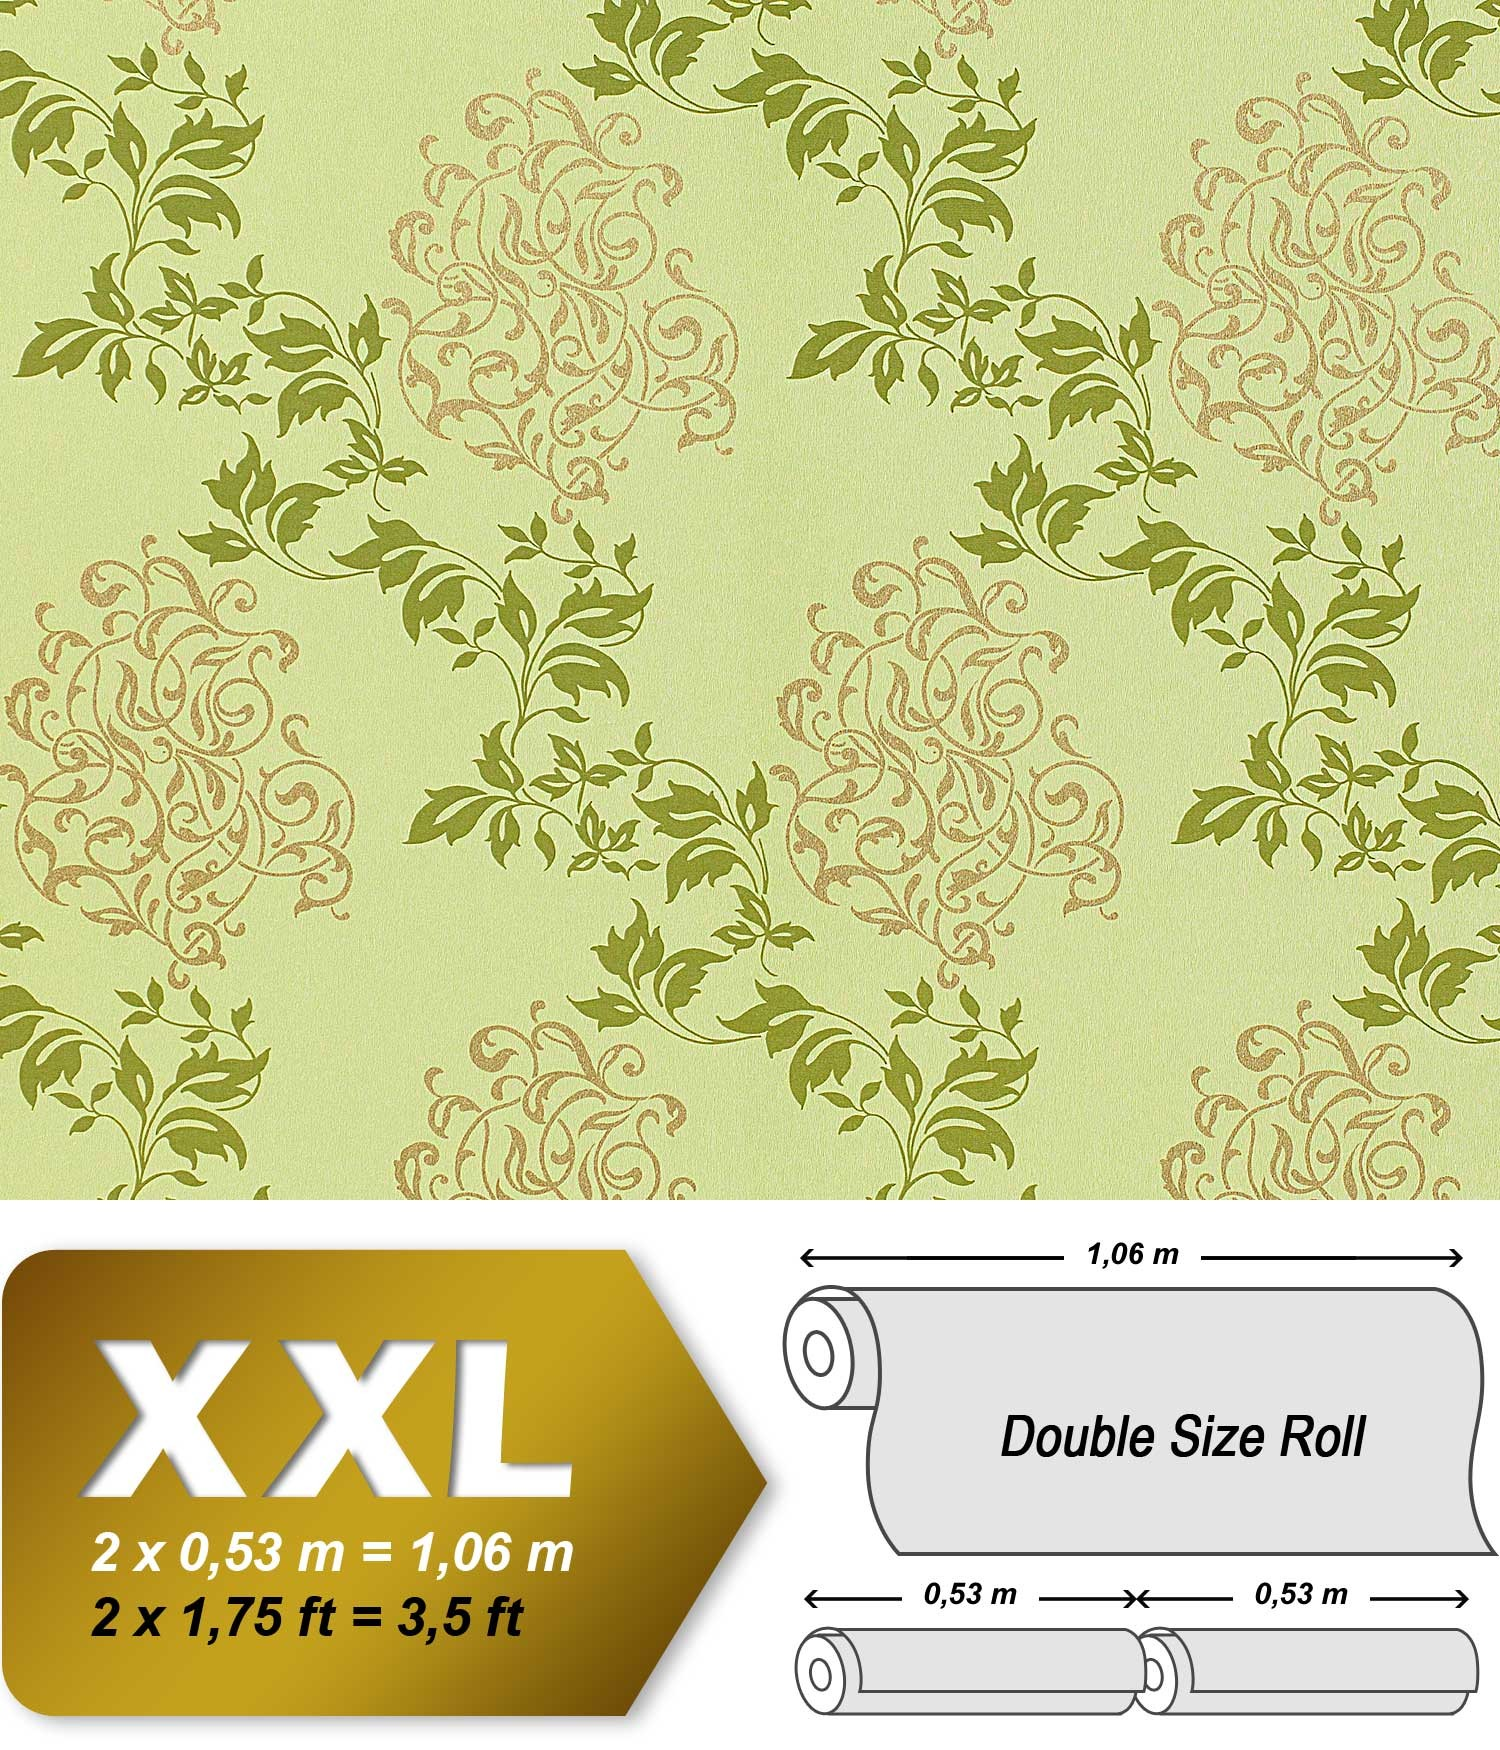 Luxury Floral Wallpaper Wall Non Woven EDEM 946 28 Covering Classic Leaf Decor Yellow Green Apple Gold